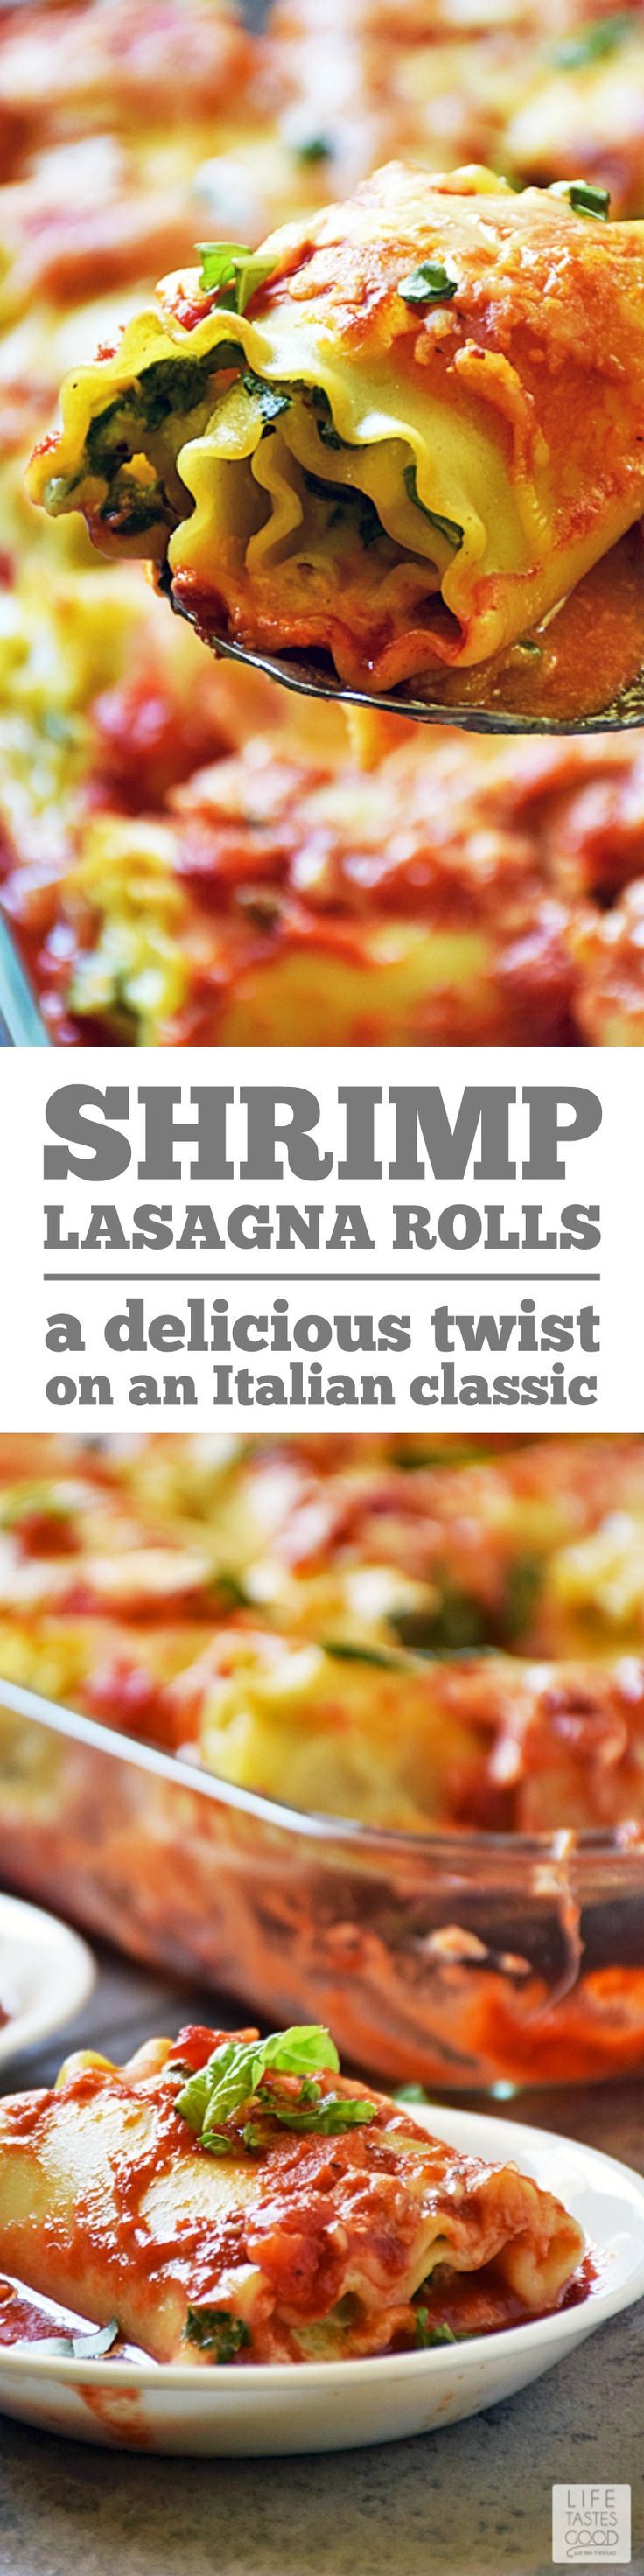 Madison's Shrimp Lasagna Rolls lightens up what is traditionally a heavier dish and gives you a portion controlled serving of the traditional Italian classic lasagna recipe. This easy recipe uses fresh ingredients to maximize flavor and is a real crowd pleaser! #LTGrecipes